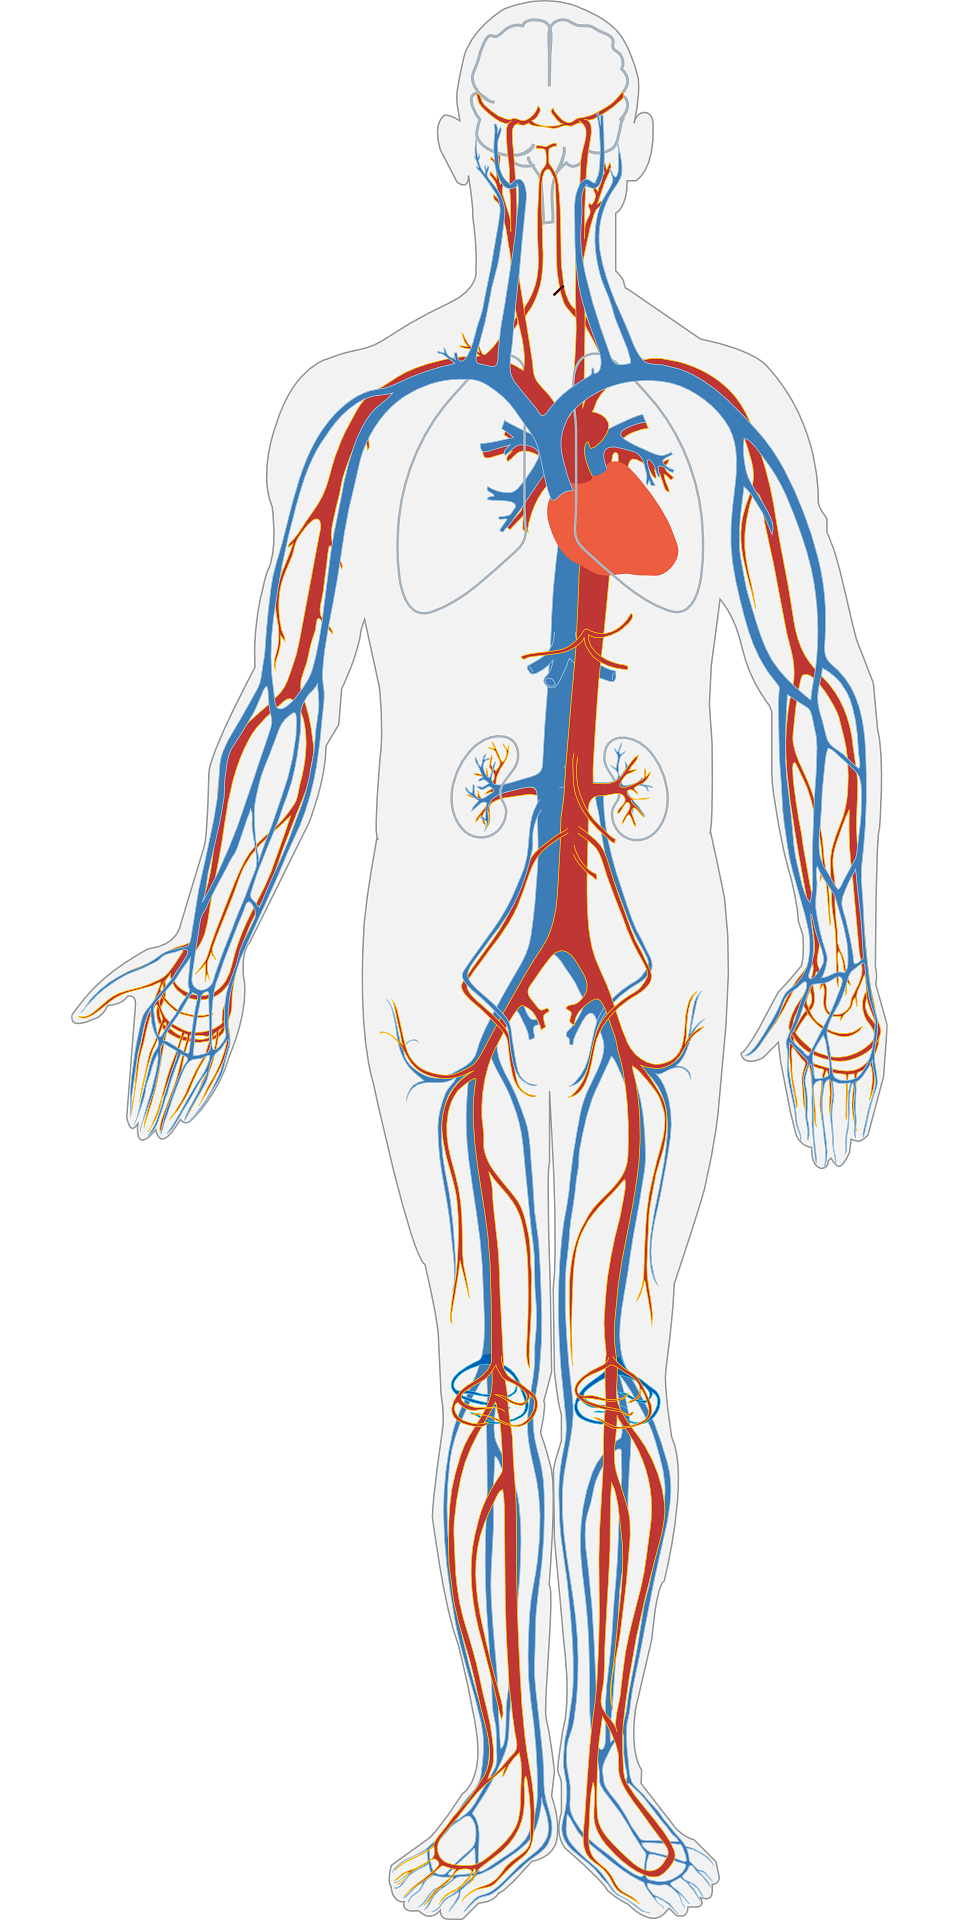 Where heart is located in human body ?